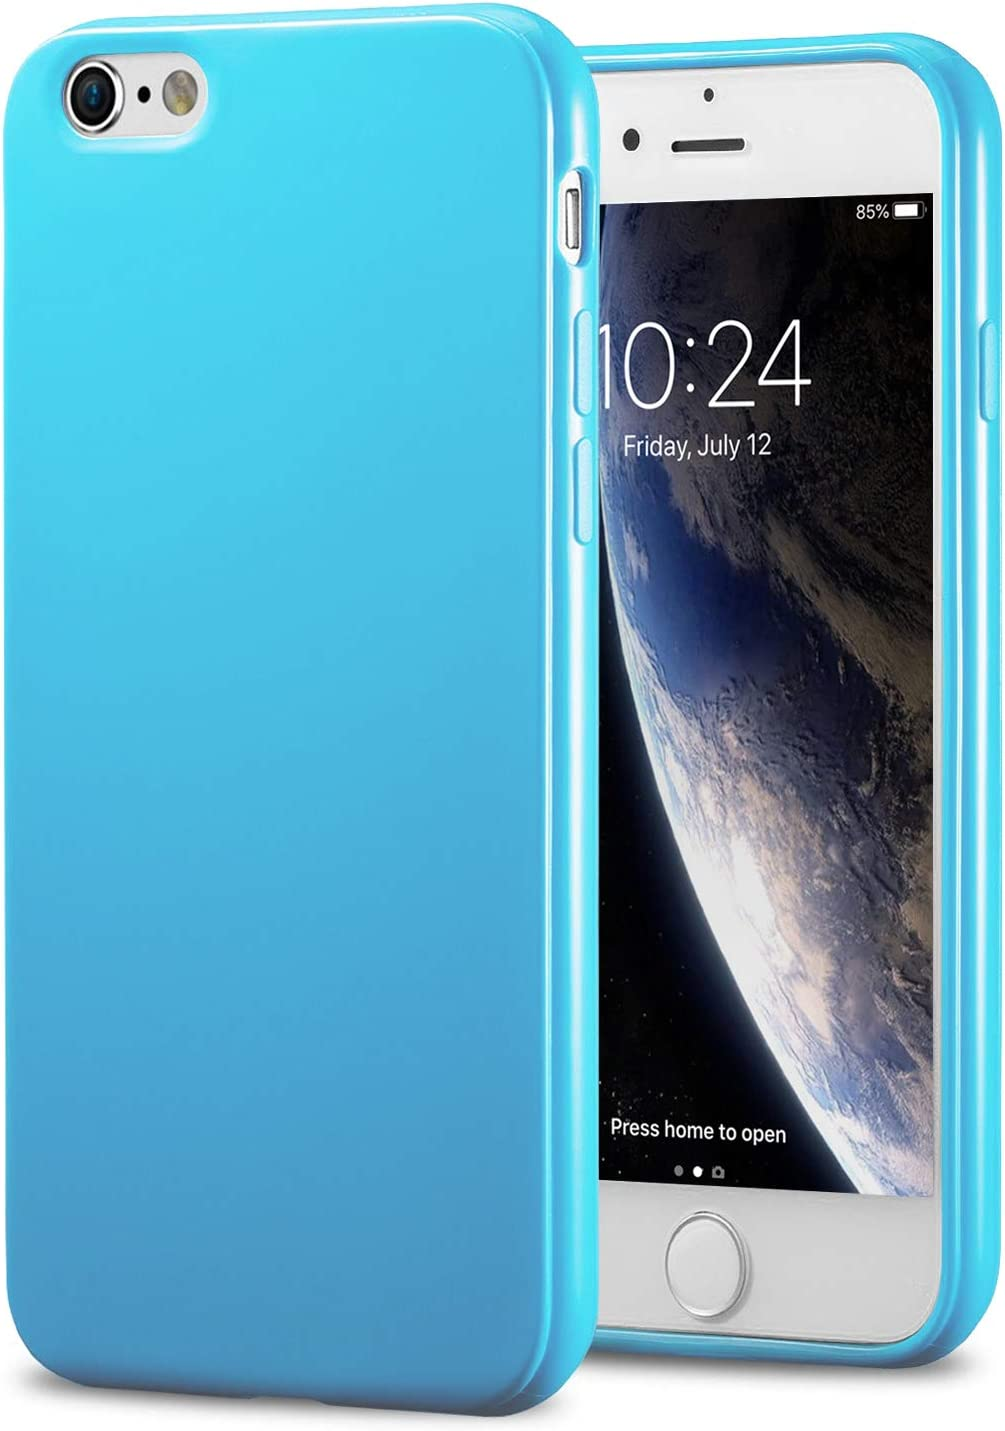 TENOC Phone Case Compatible for Apple iPhone 6S and iPhone 6 4.7 Inch, Slim Fit Cases Soft TPU Bumper Protective Cover, Glossy Light Blue